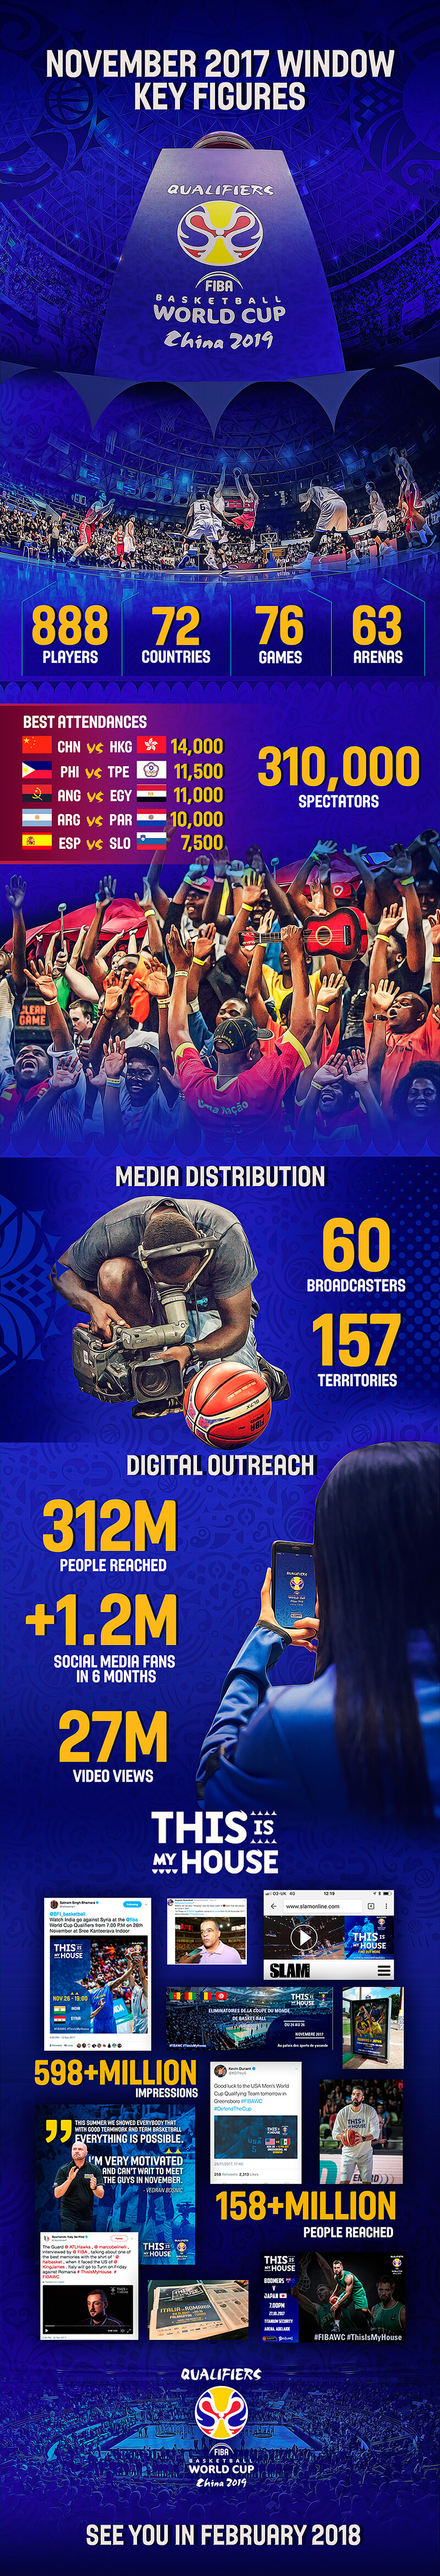 FIBA WC digital november 2017